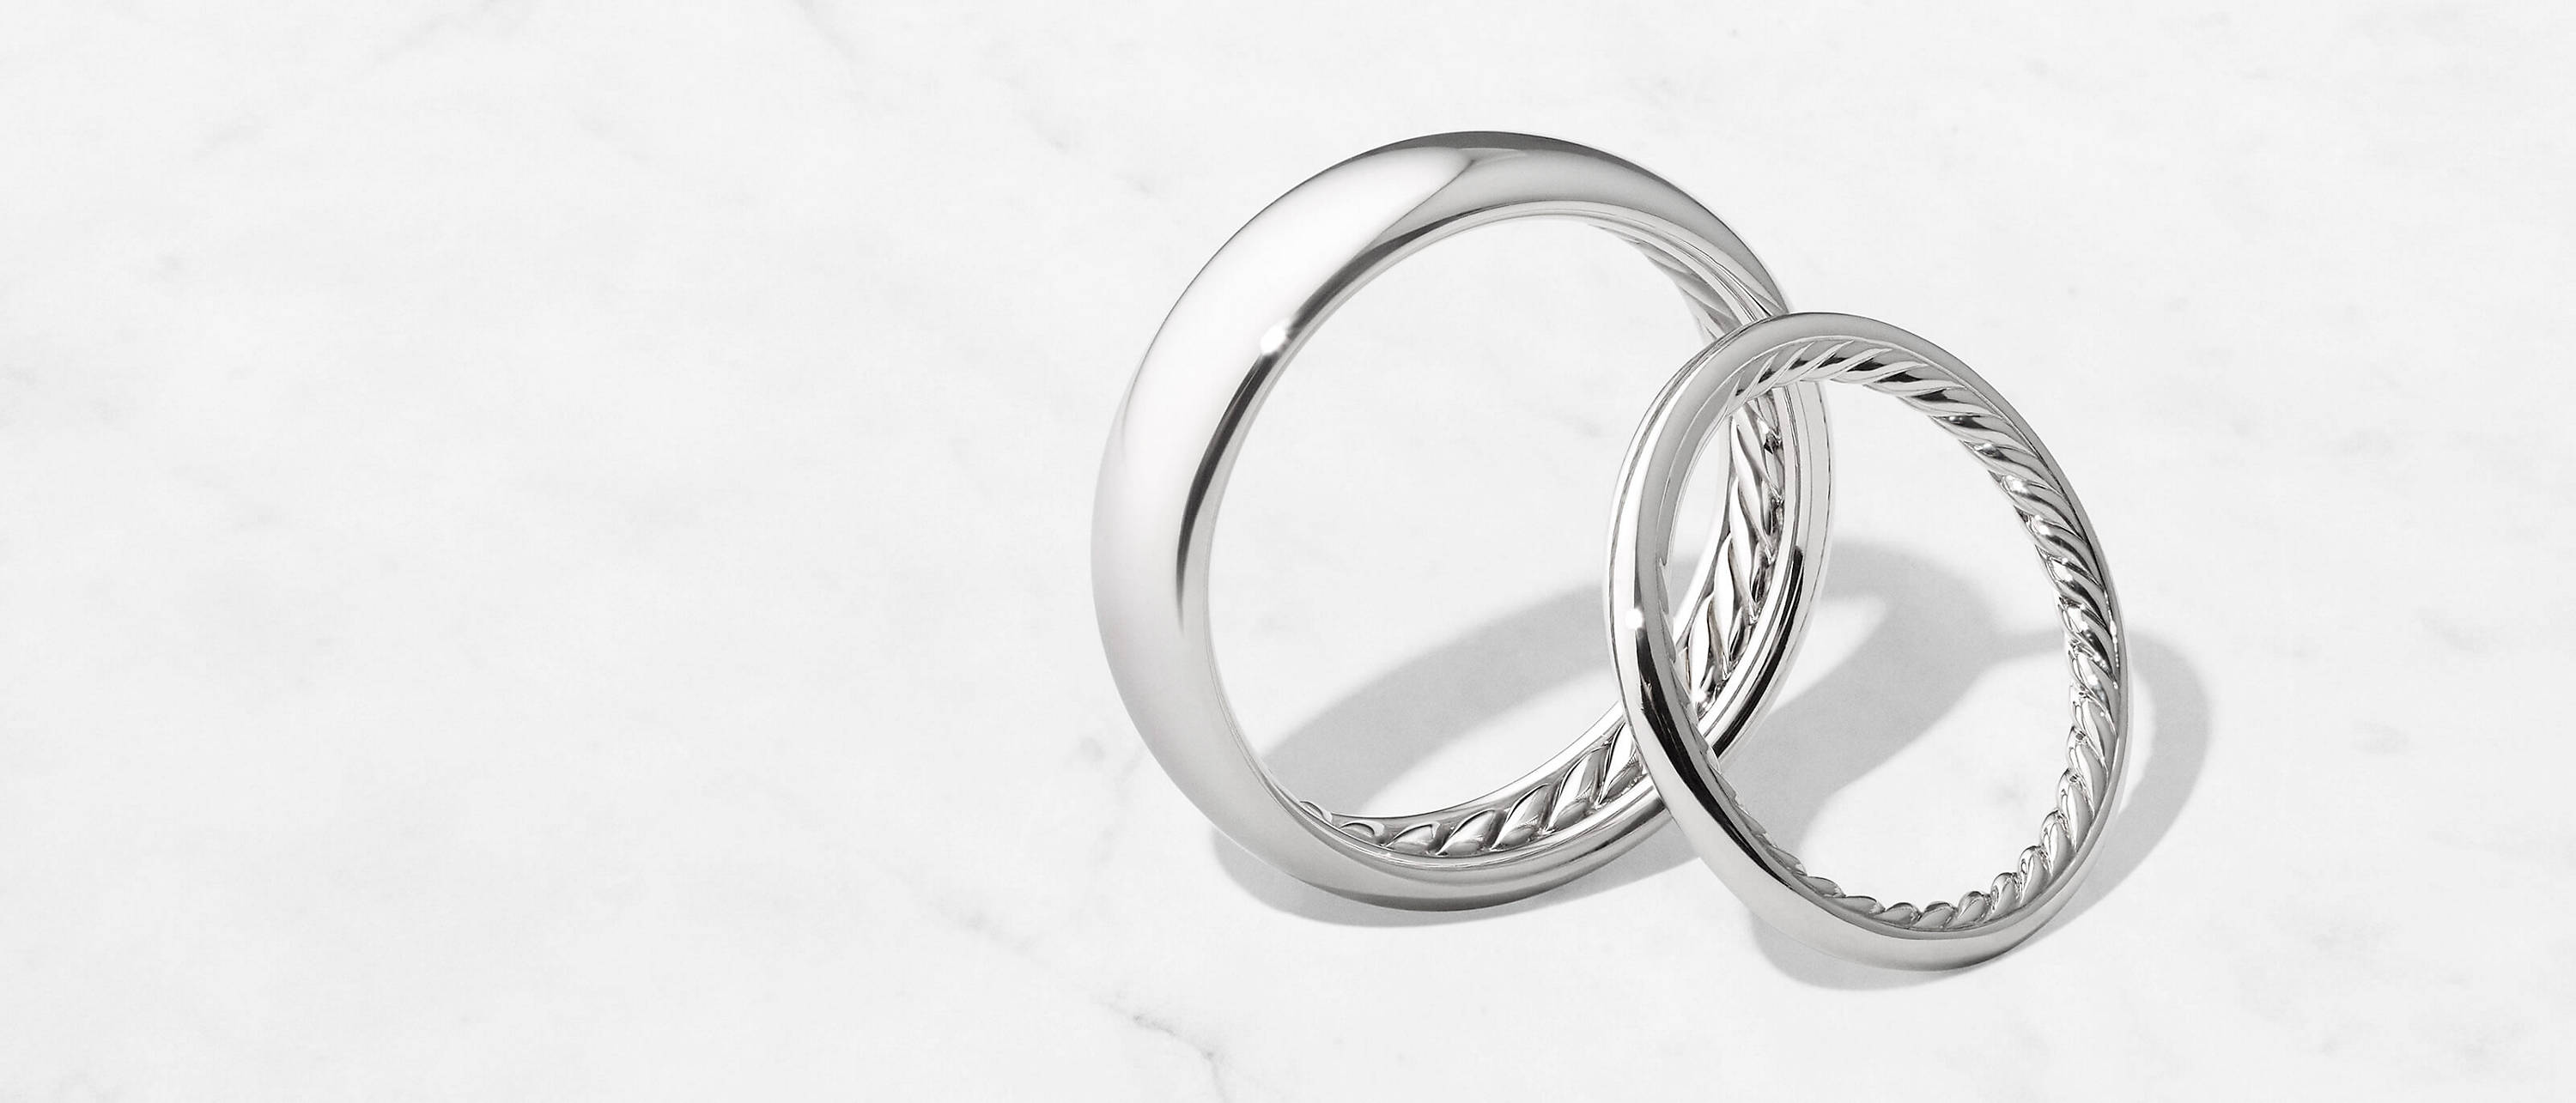 A DY Eden women's band in platinum leans against an upright DY Classic men's band in platinum on a marble surface.